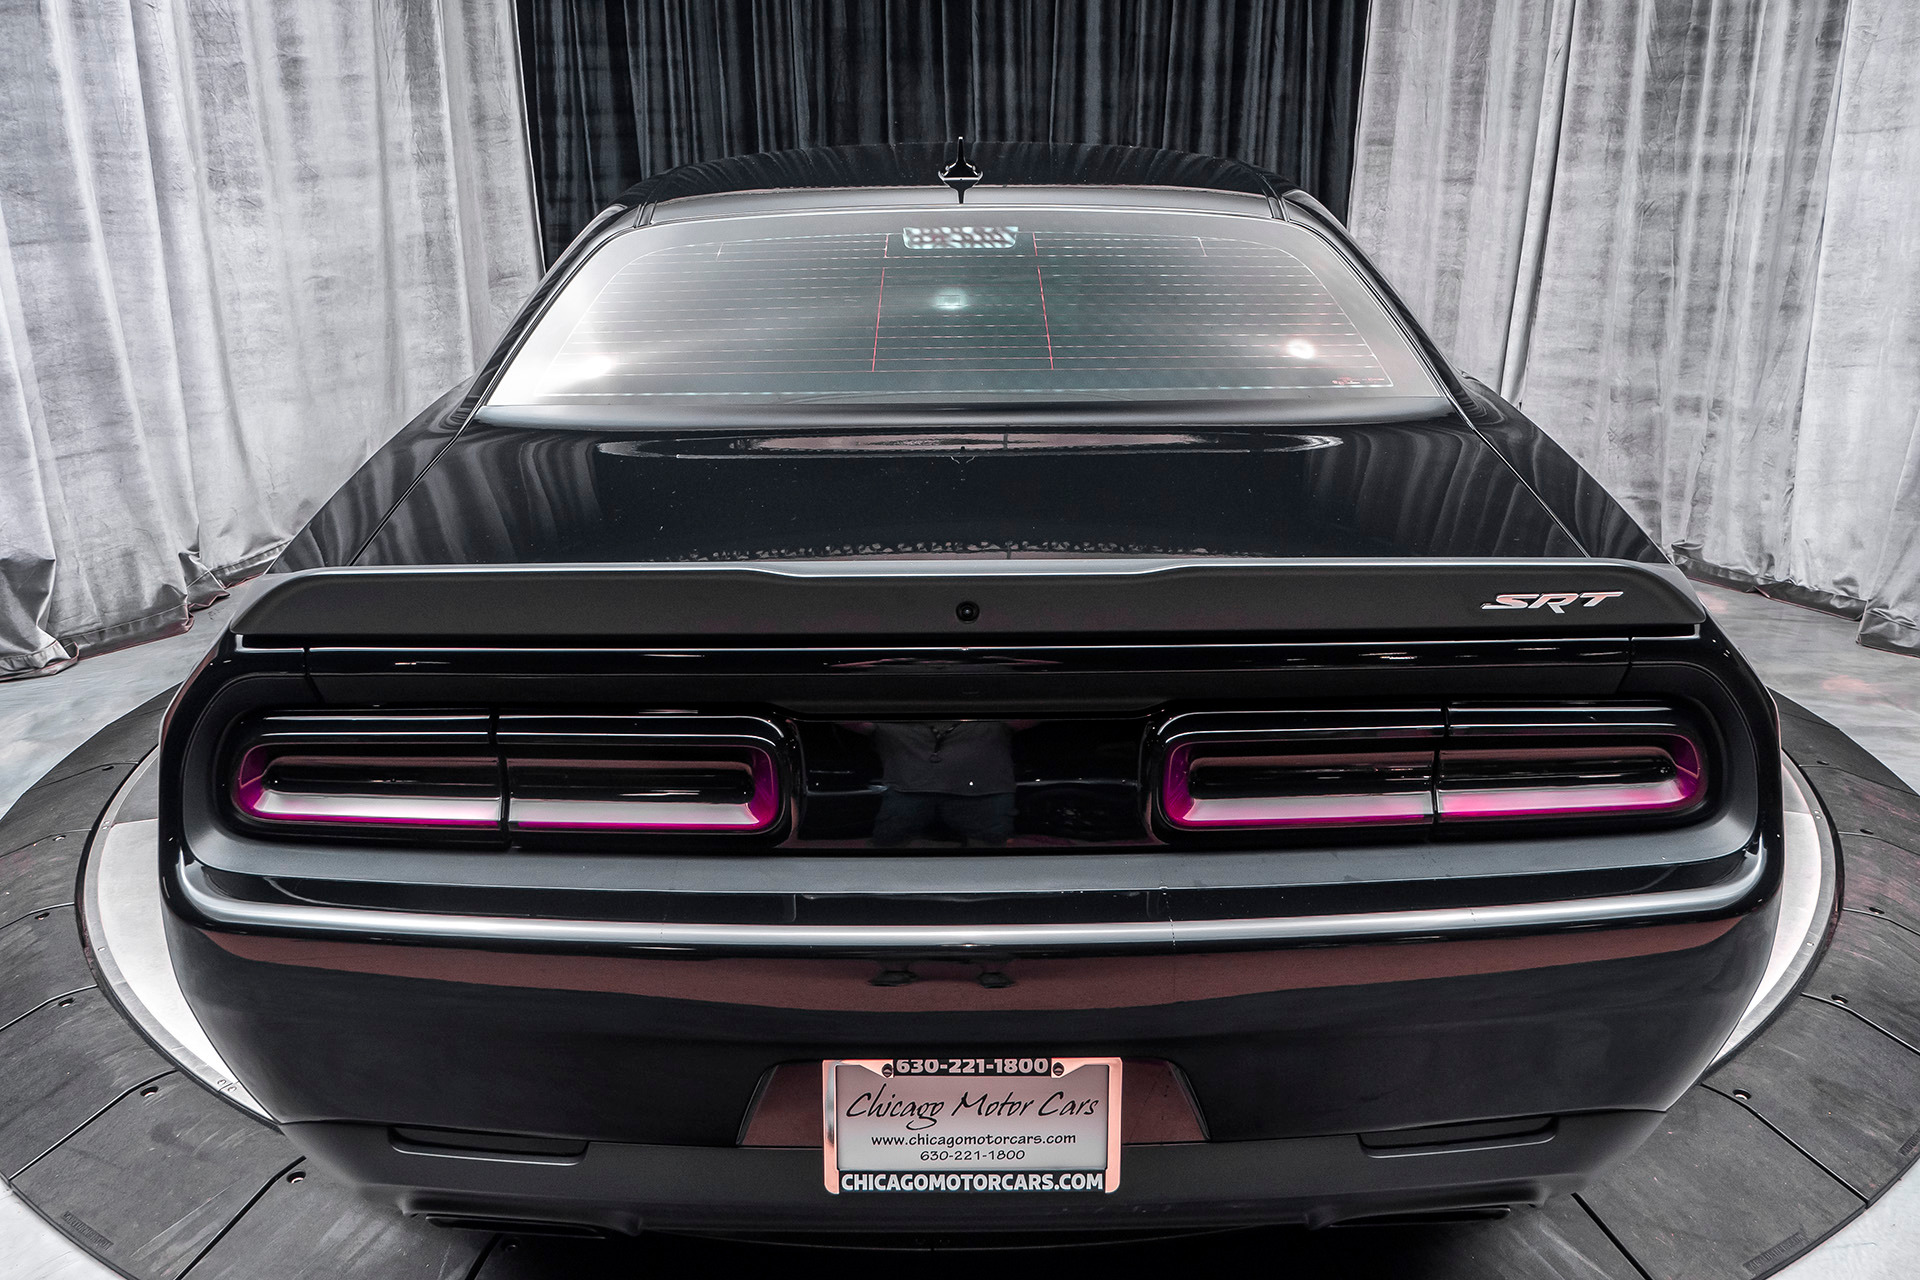 Used-2018-Dodge-Challenger-SRT-Demon-Coupe-Only-1978-Miles-Crate-Included